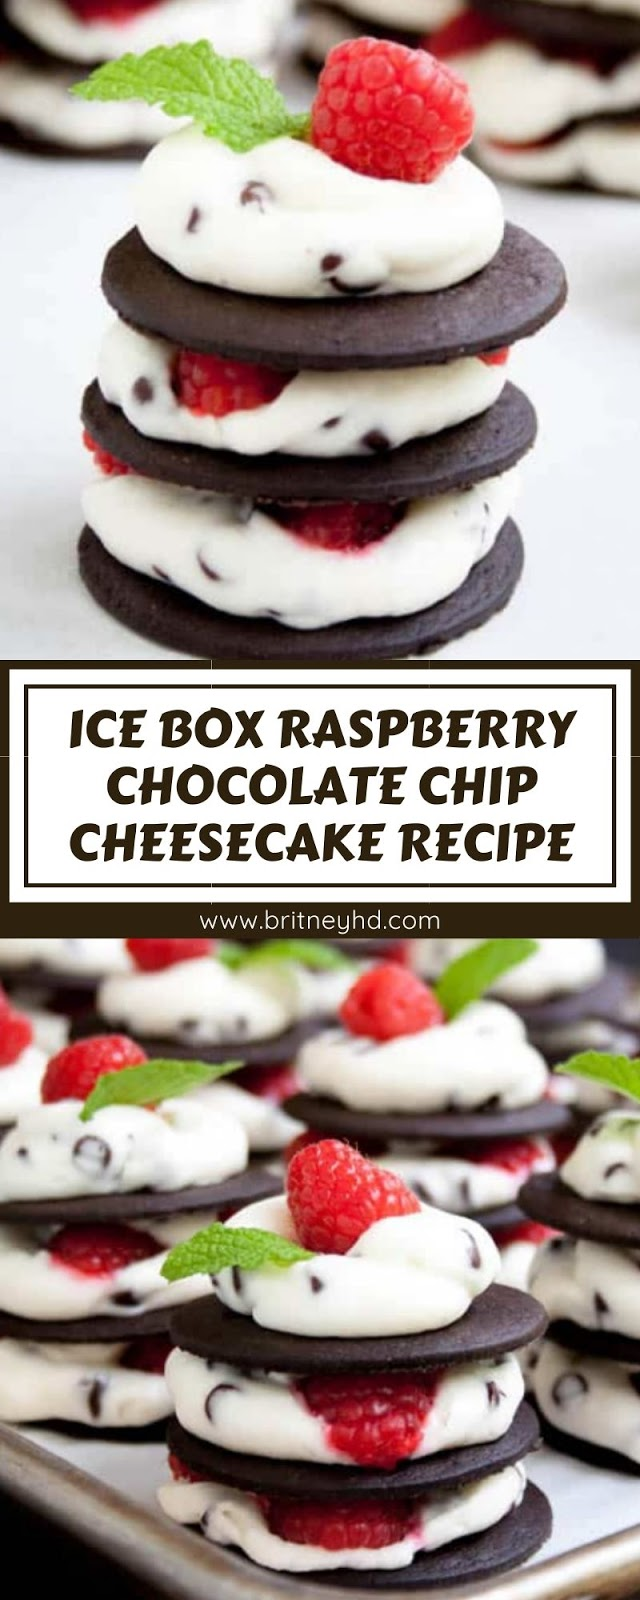 ICE BOX RASPBERRY CHOCOLATE CHIP CHEESECAKE RECIPE